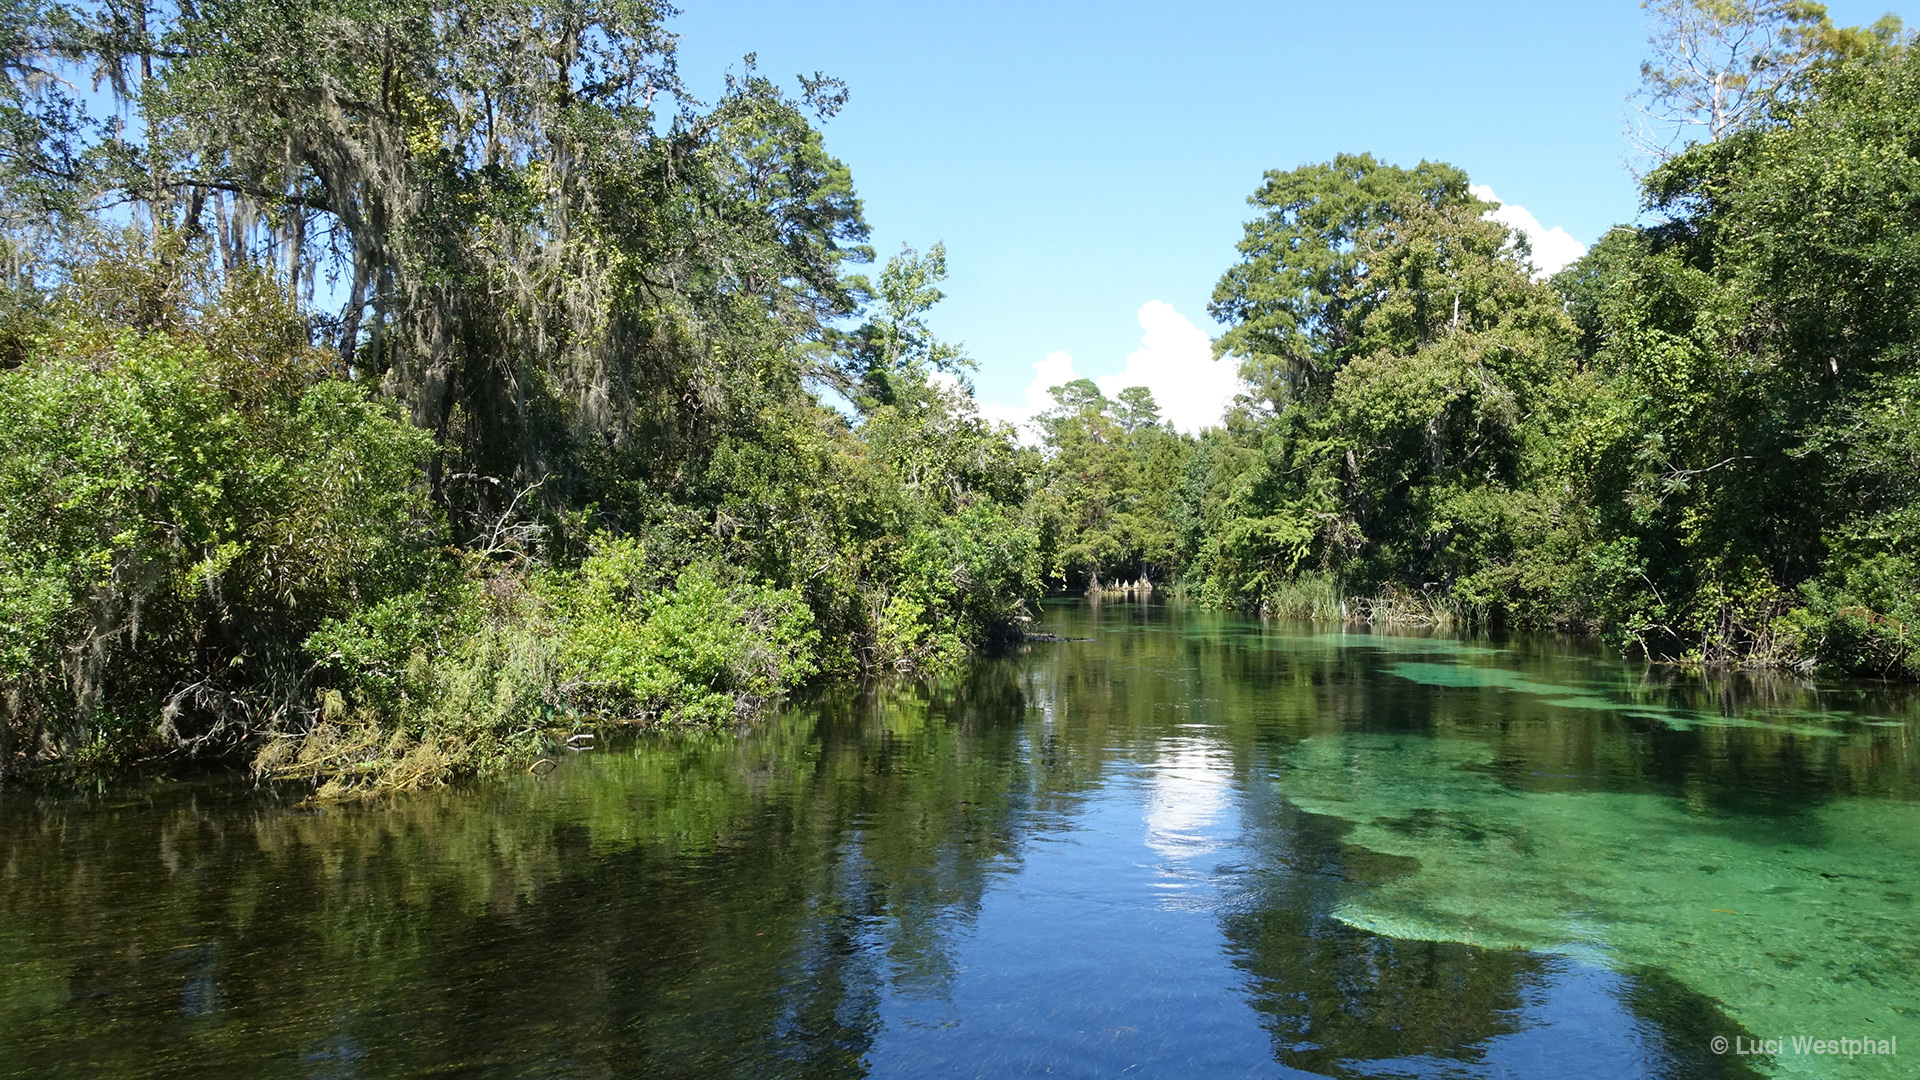 Weeki Wachee River in Hernando County, near the west coast of Florida